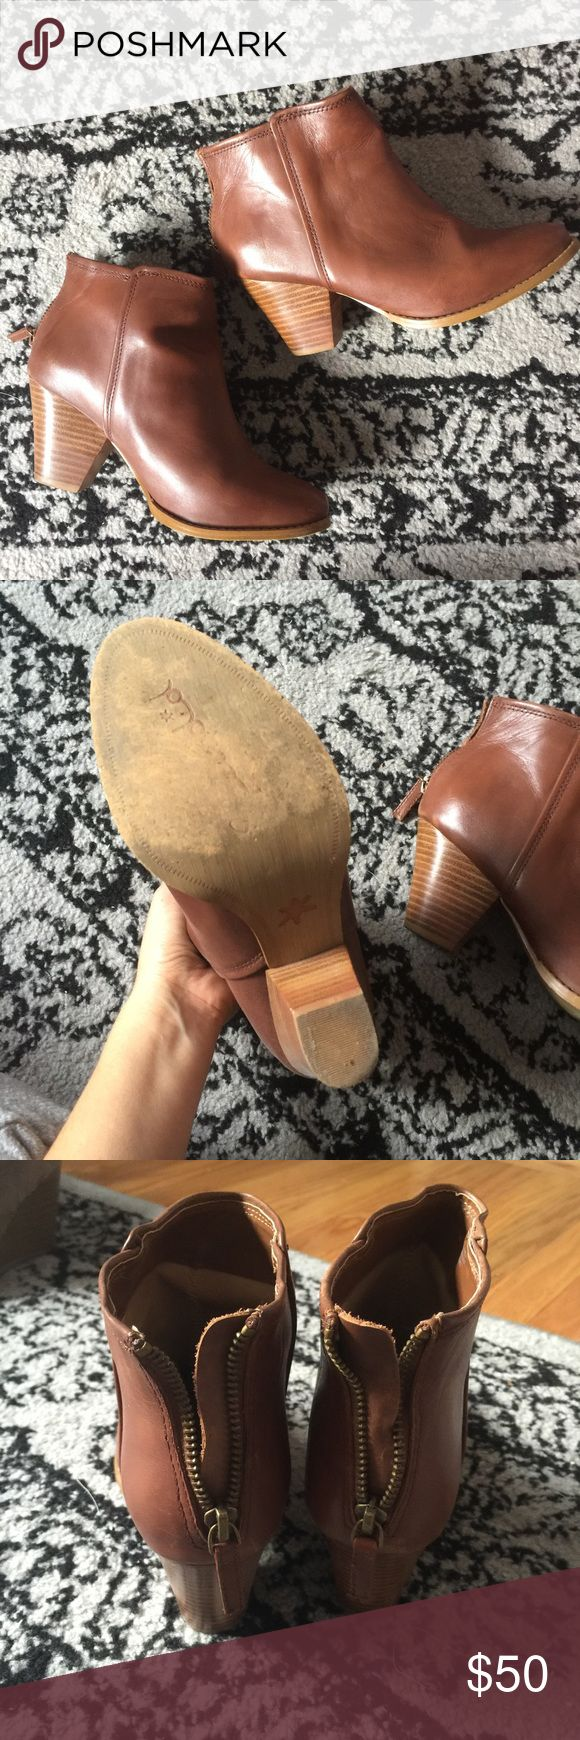 Splendid Cognac Booties Super cute and comfortable boots! These are leather and in great shape Splendid Shoes Ankle Boots & Booties